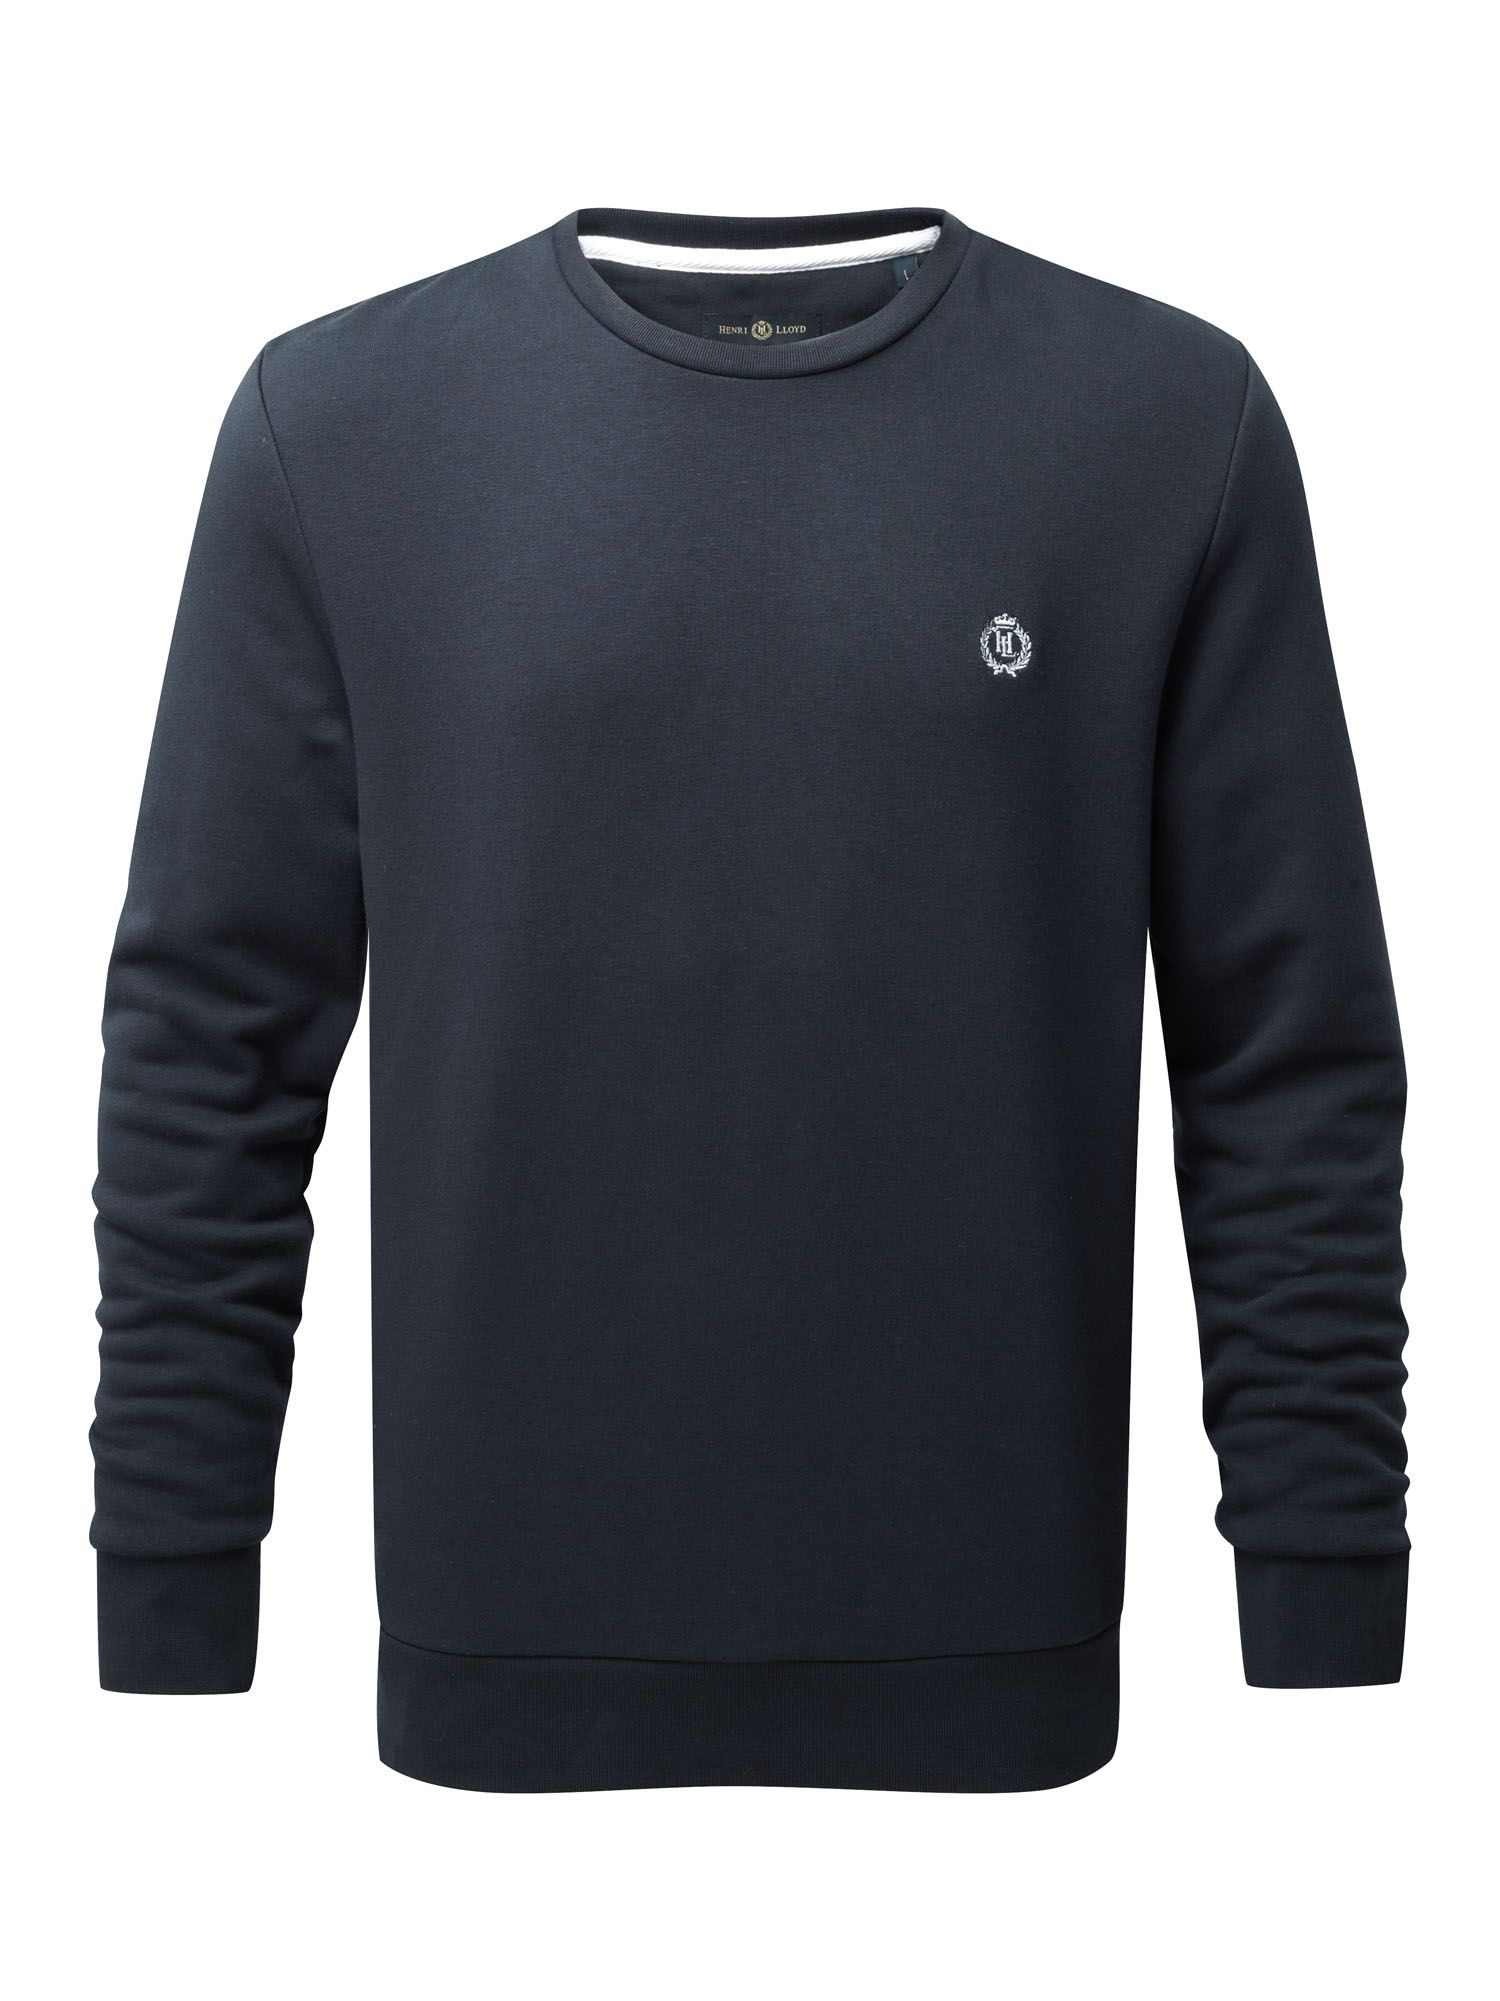 Men's Henri Lloyd Bredgar Crew Sweatshirt, Blue